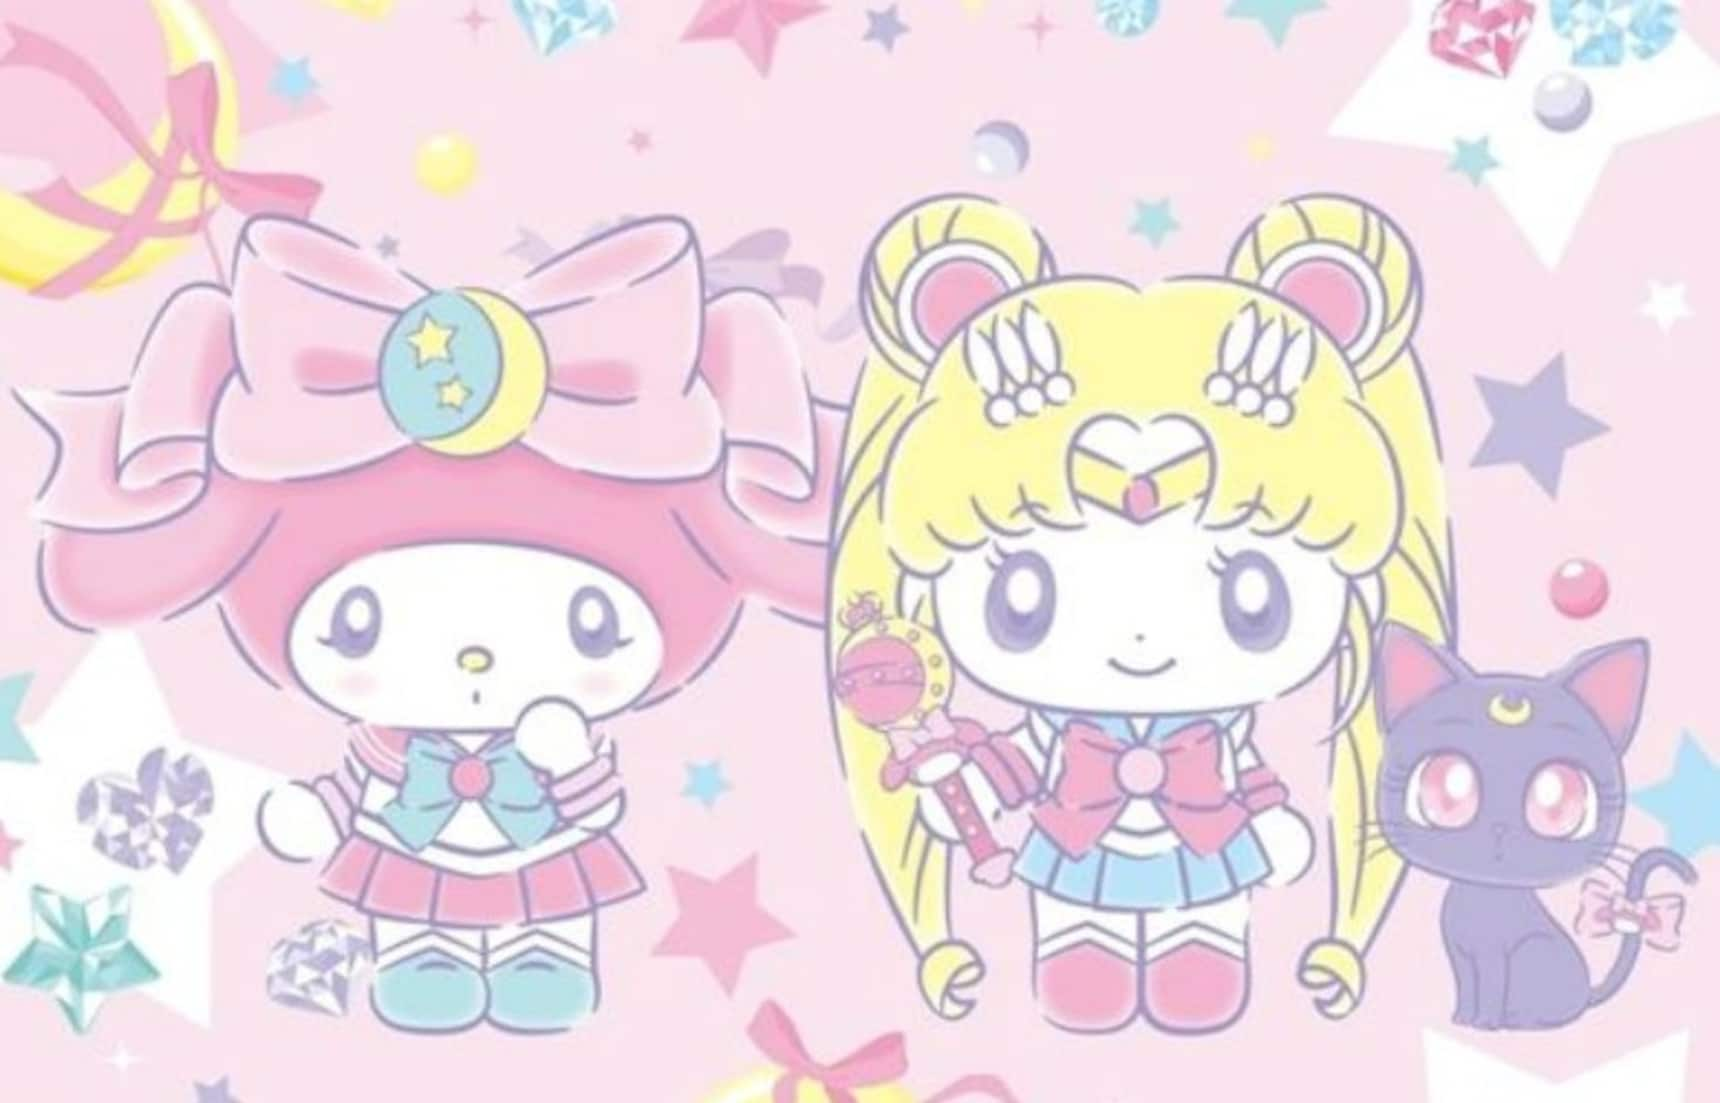 Sanrio & Sailor Moon Collab Goods Are Here